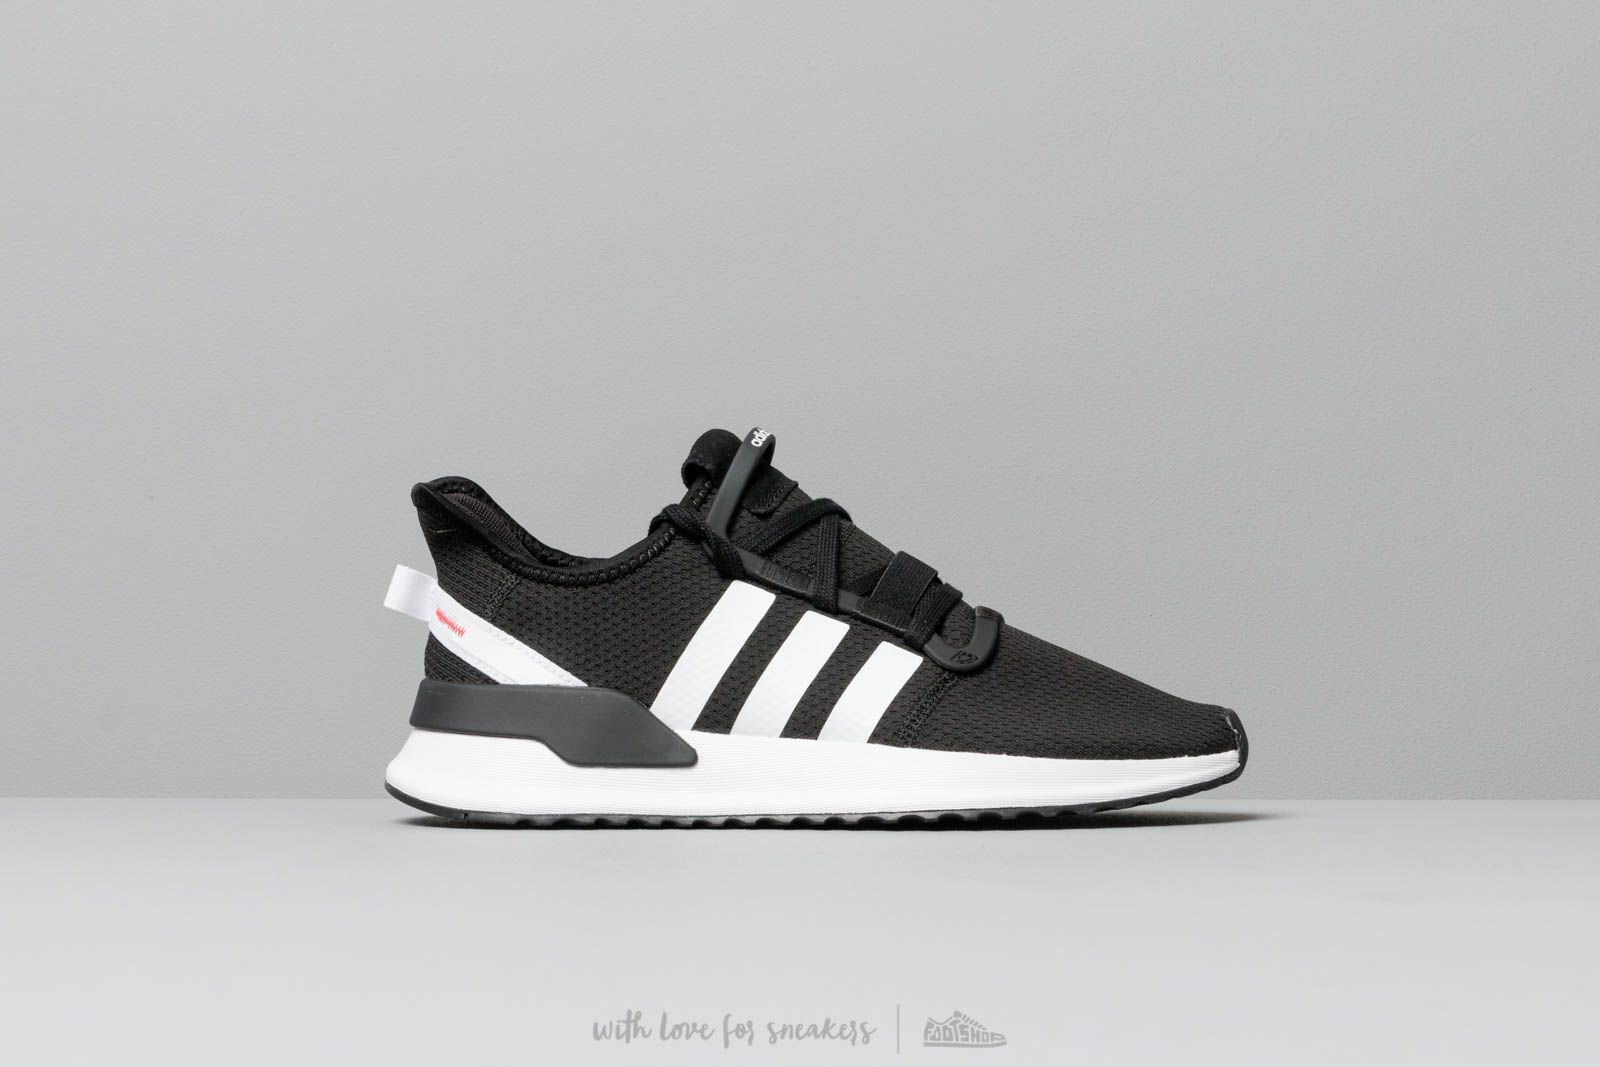 6800e965d adidas U Path Run Core Black  Ftw White  Shock Red at a great price